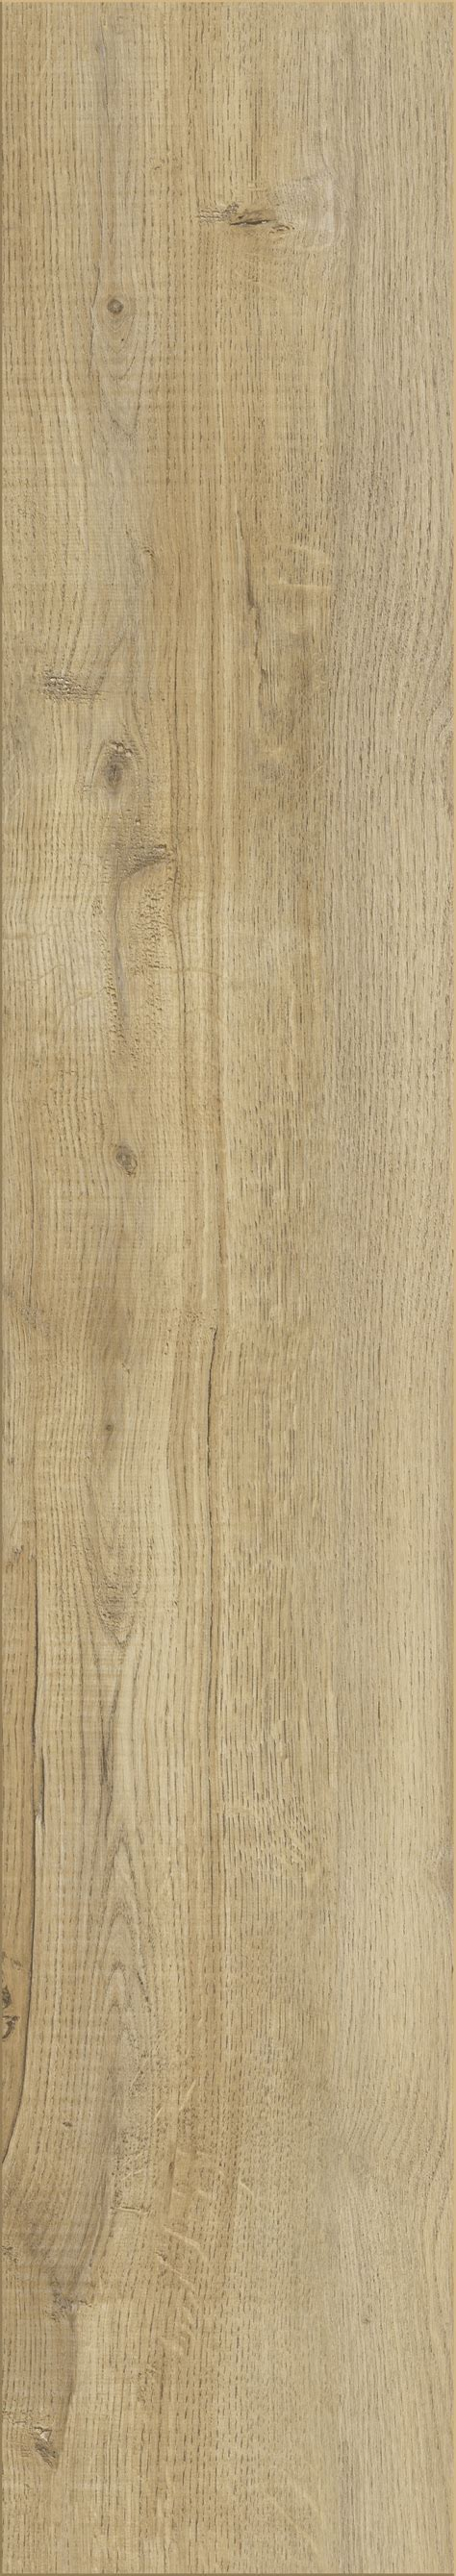 KRONOTEX EXQUISIT PLUS ? Montmelo Oak nature D 3661 from